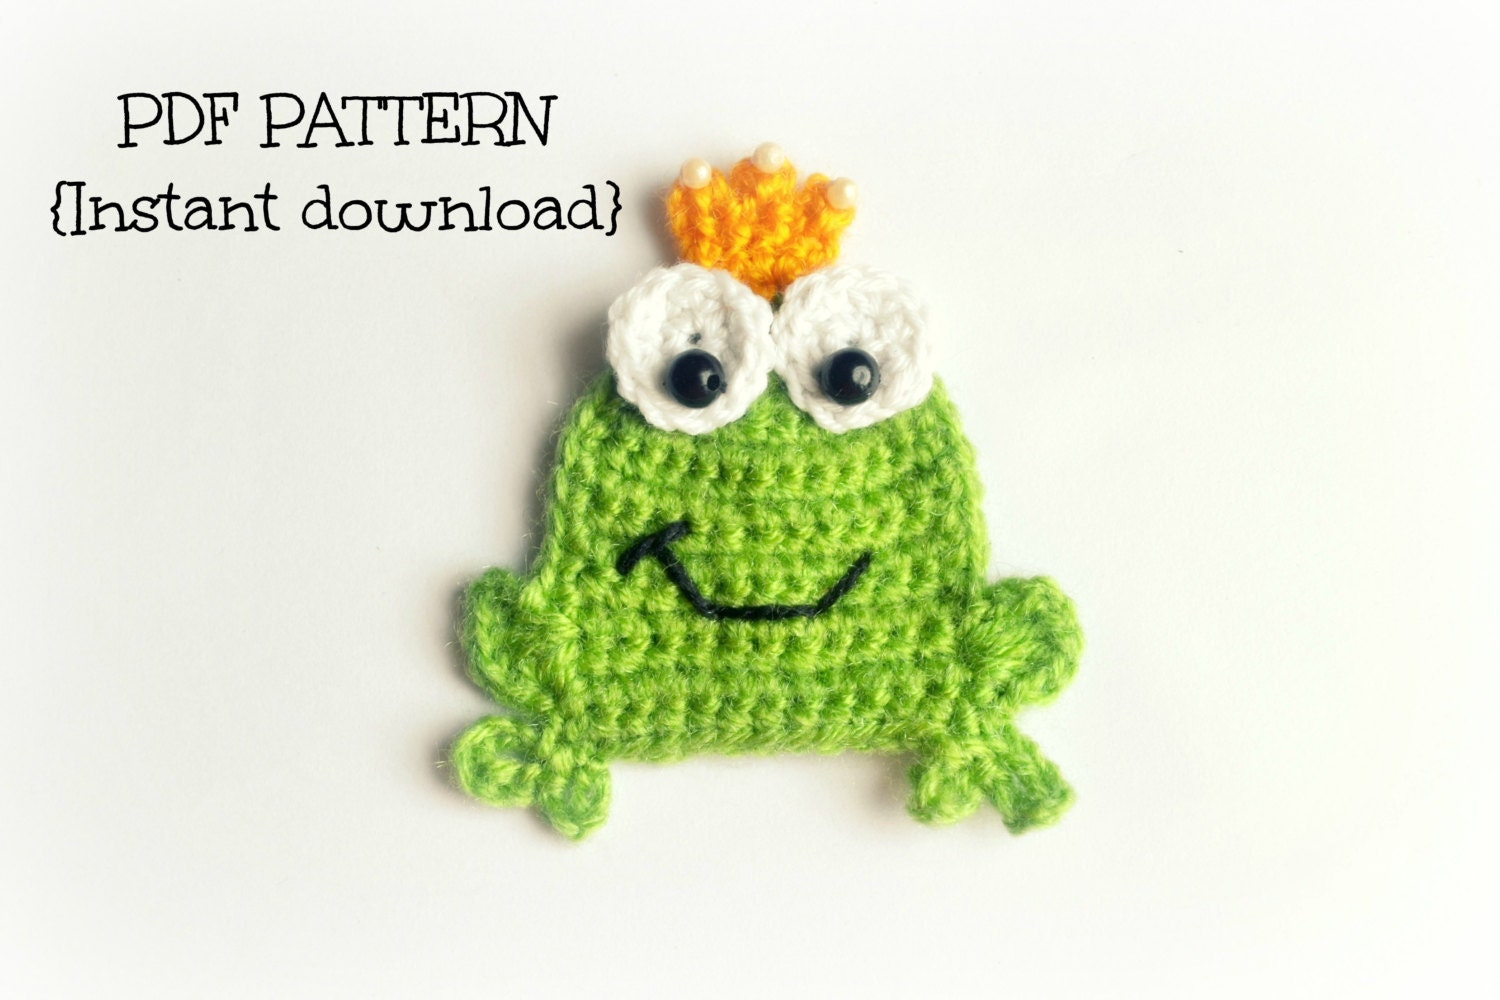 crochet frog applique pattern crochet pattern by tlhpatterns. Black Bedroom Furniture Sets. Home Design Ideas